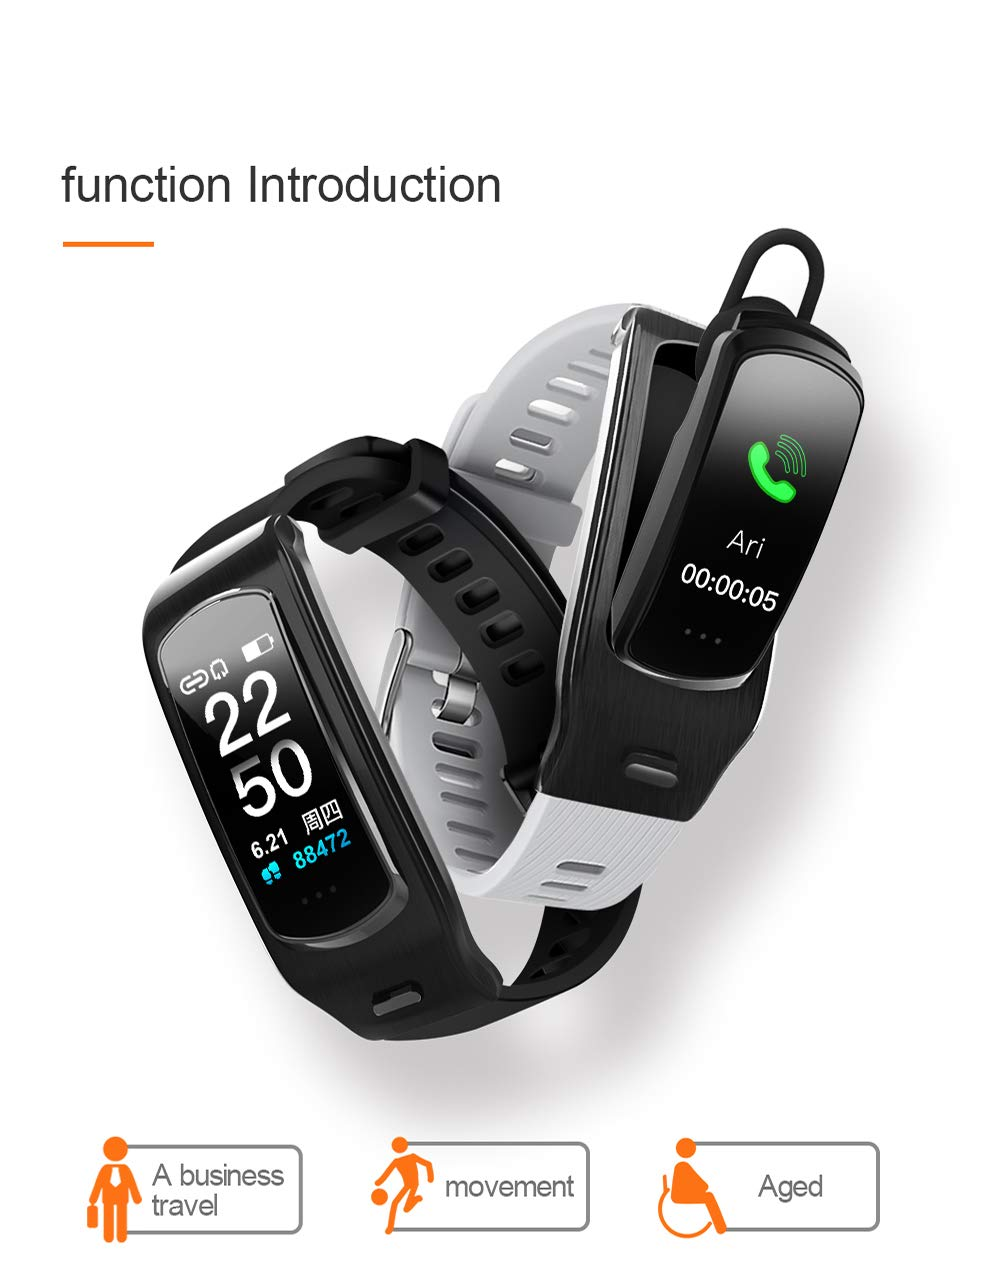 PGTC Fitness Sport Smartwatch Bluetooth Headset with Heart Rate Monitor, Blood Pressure Test, IP68 Water Resistant Smart Talkband Calorie Counter Pedometer Watch for Android and iPhone (Black) by PGTC